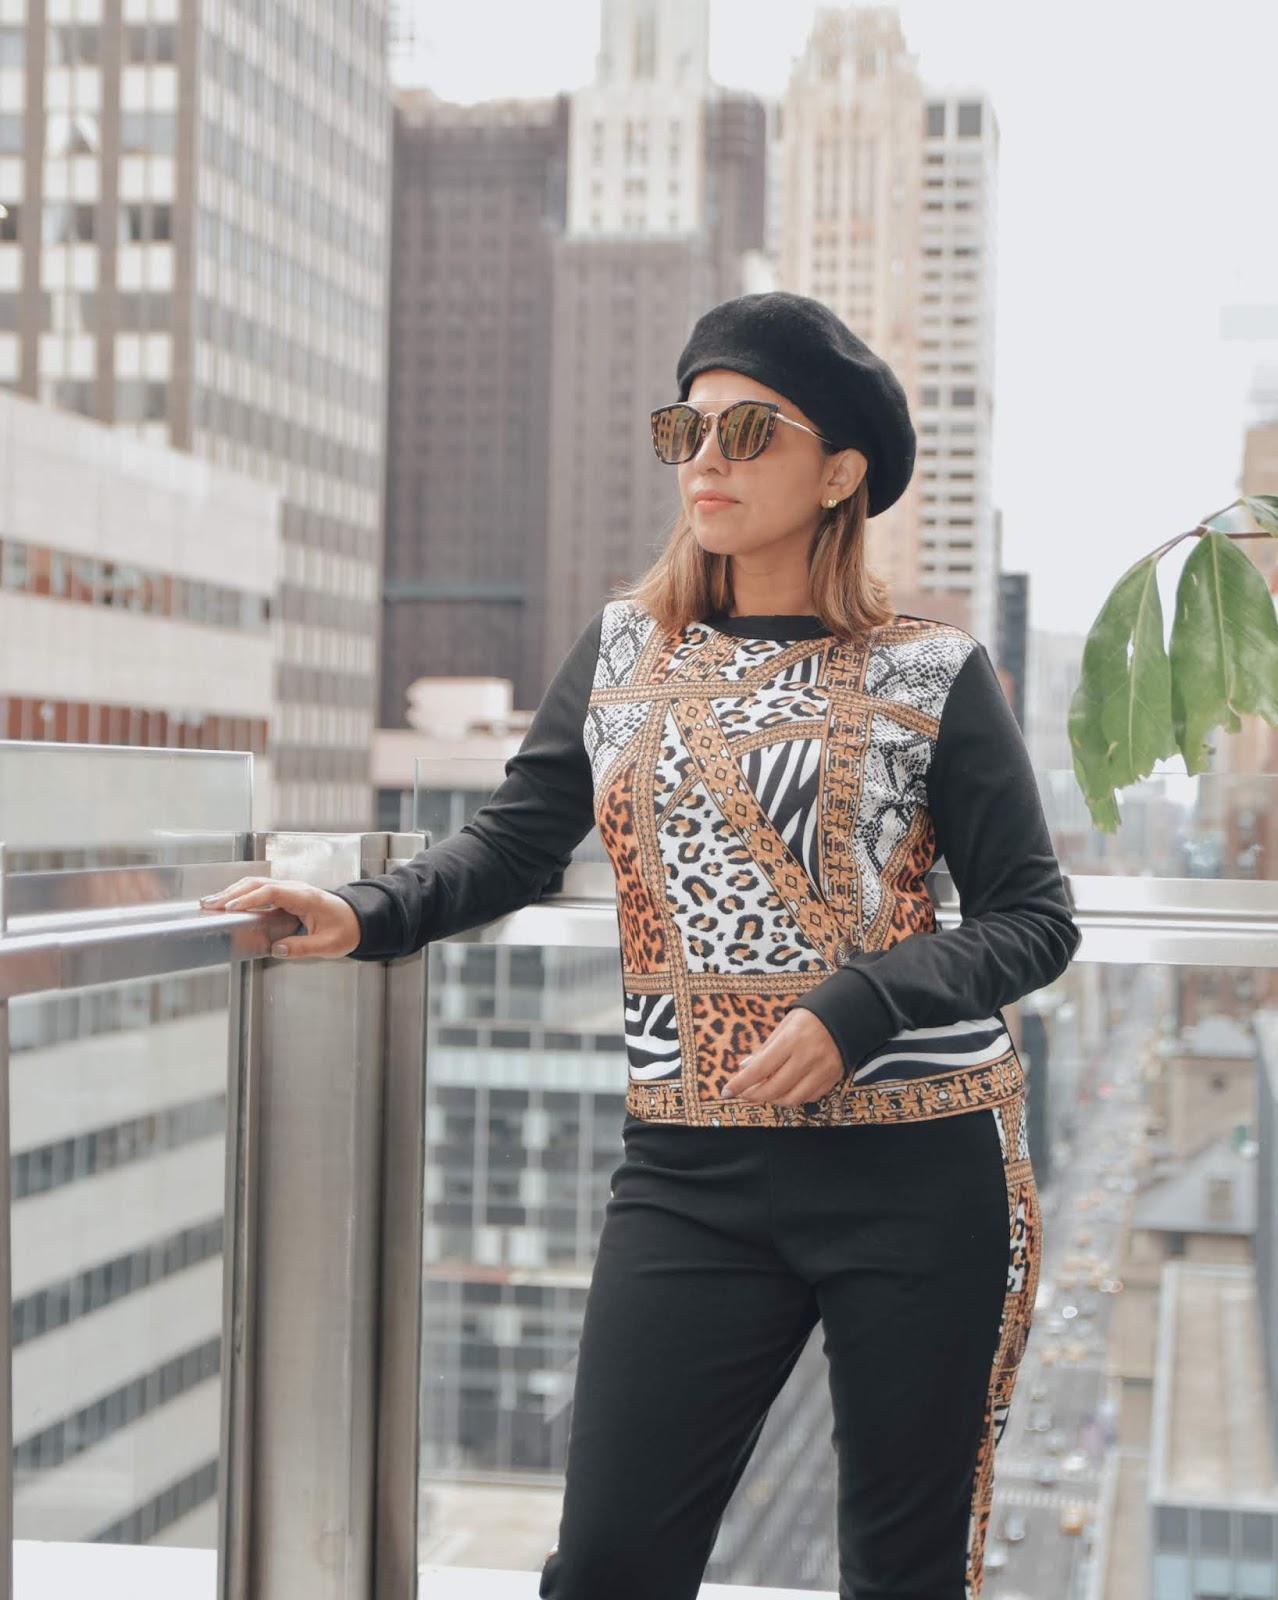 Touch Of Animal Print-mariestilo-dcblogger-travelblogger-fashionblogger-canal de mariestilo-marisolflamenco-luxegal-